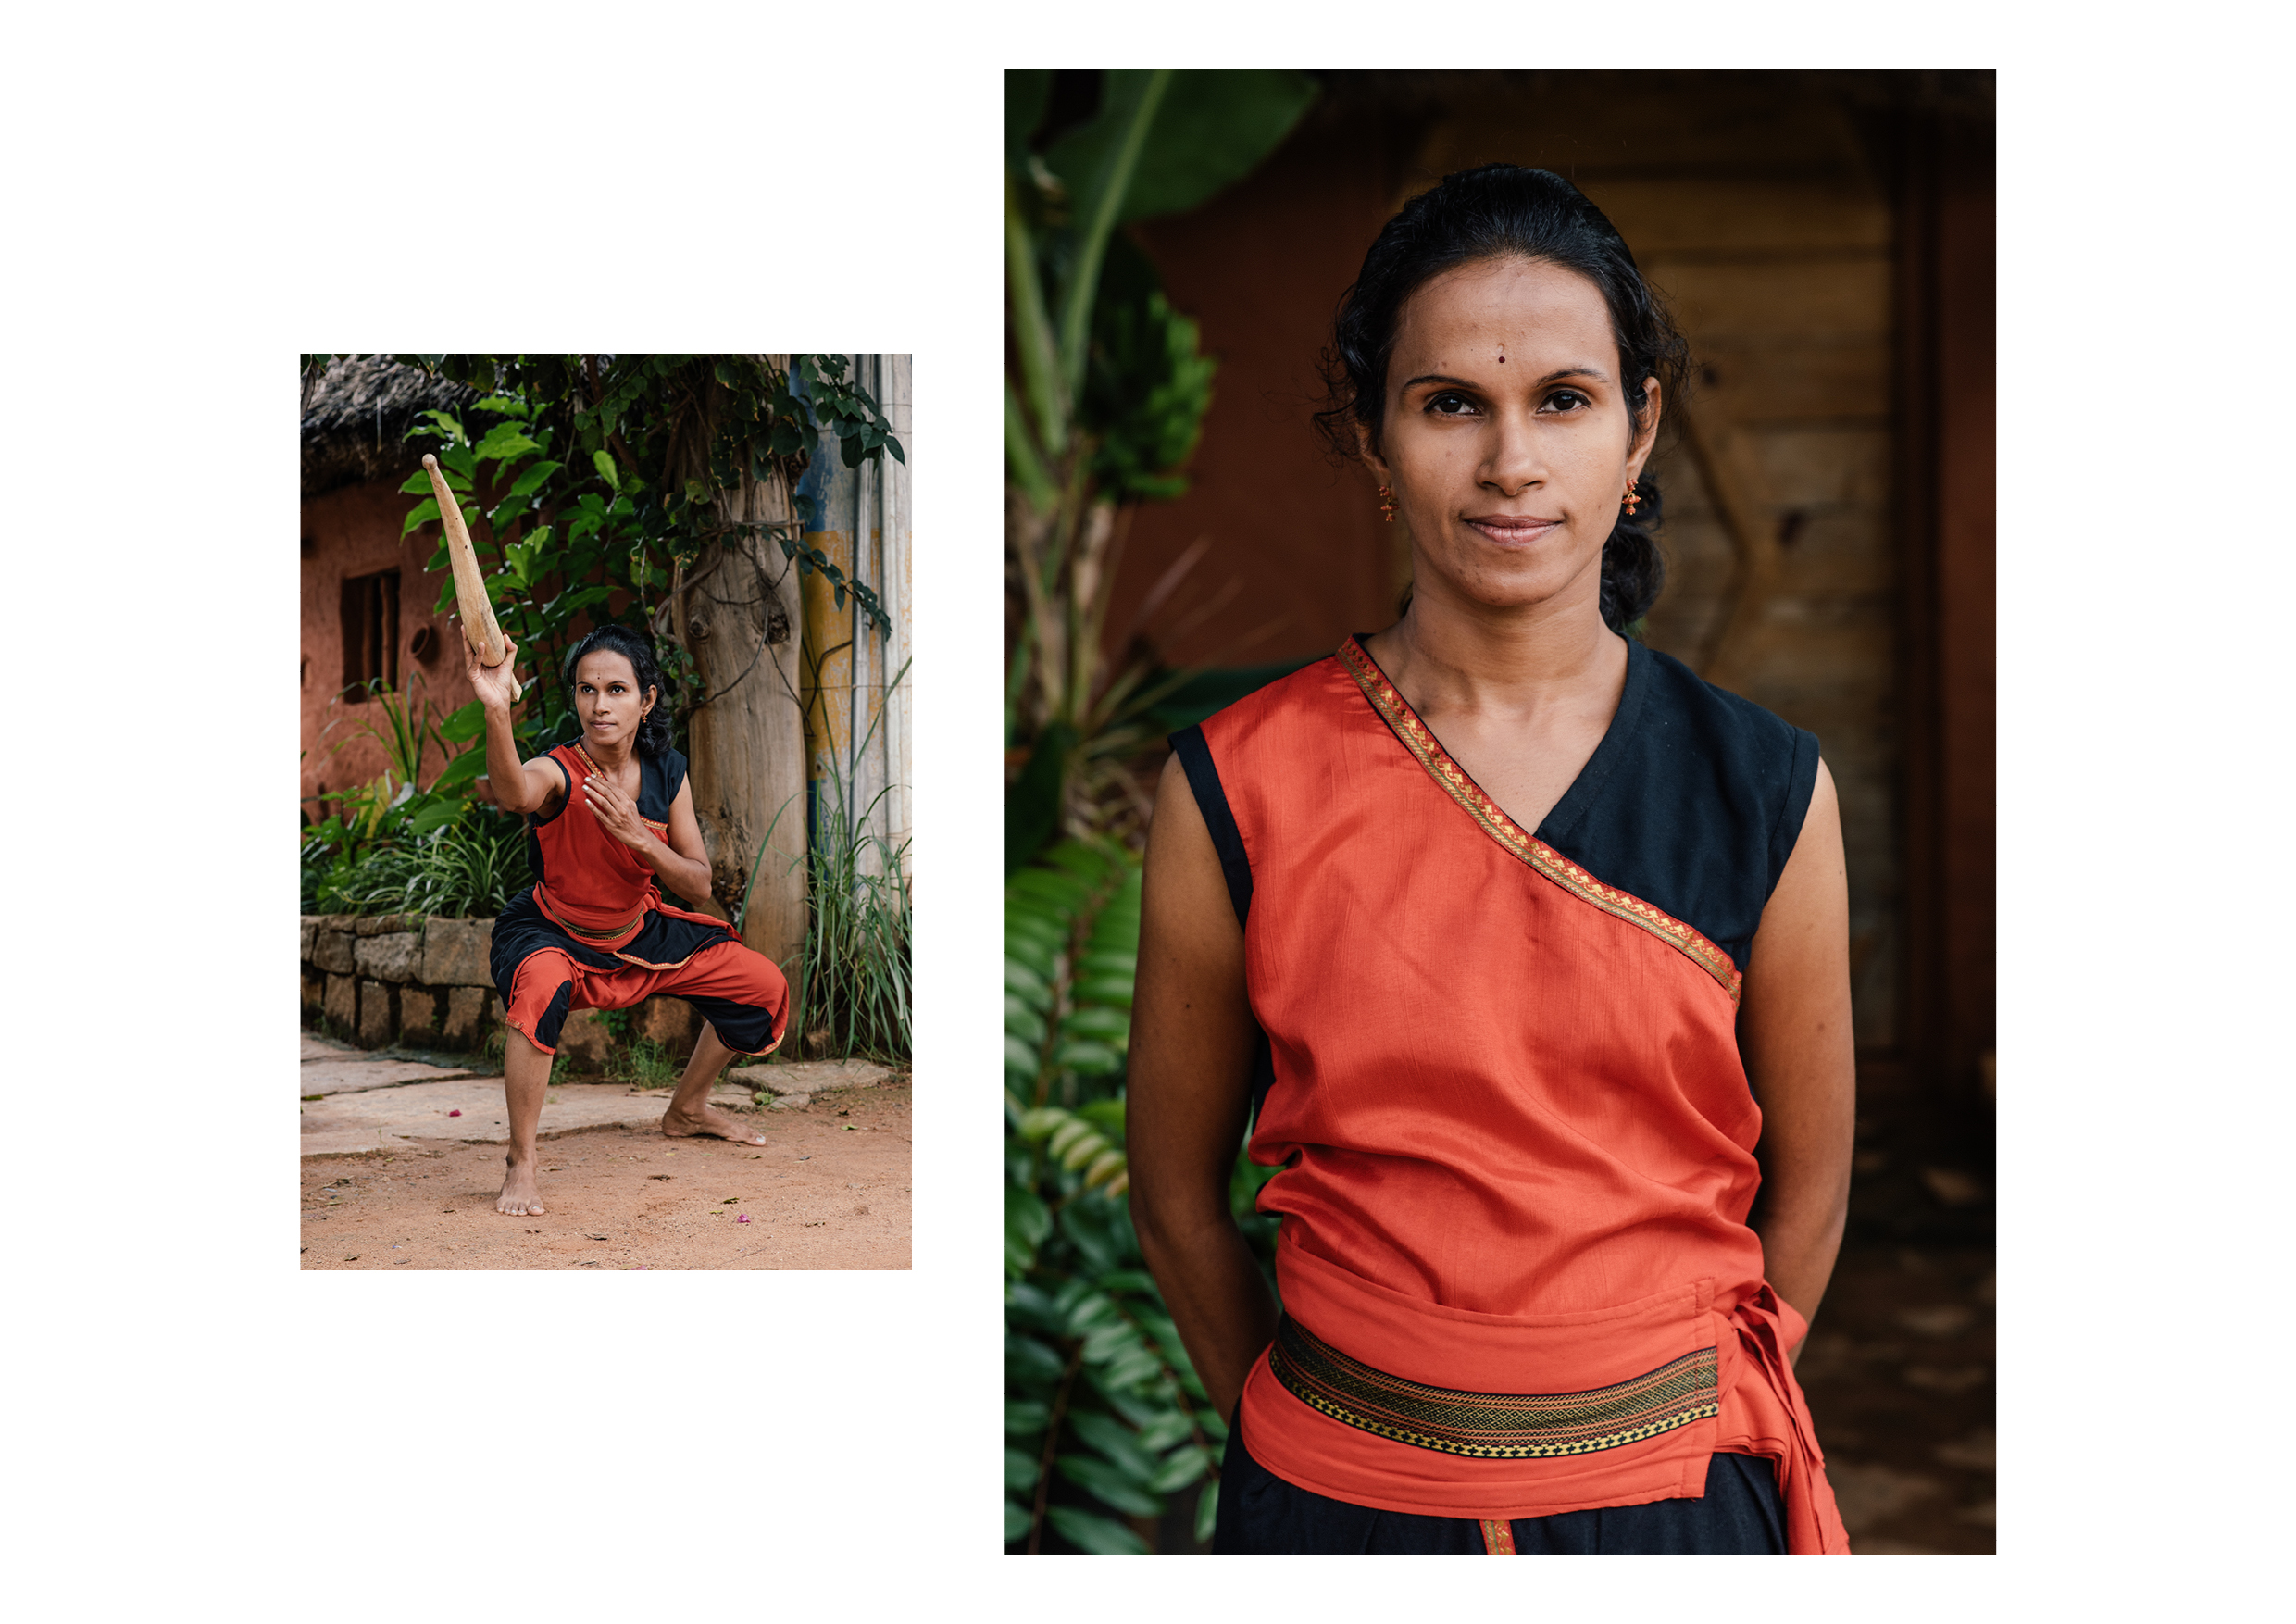 Ranjan's wife, Shiny, is also a student of Kalari, and takes part in performances.